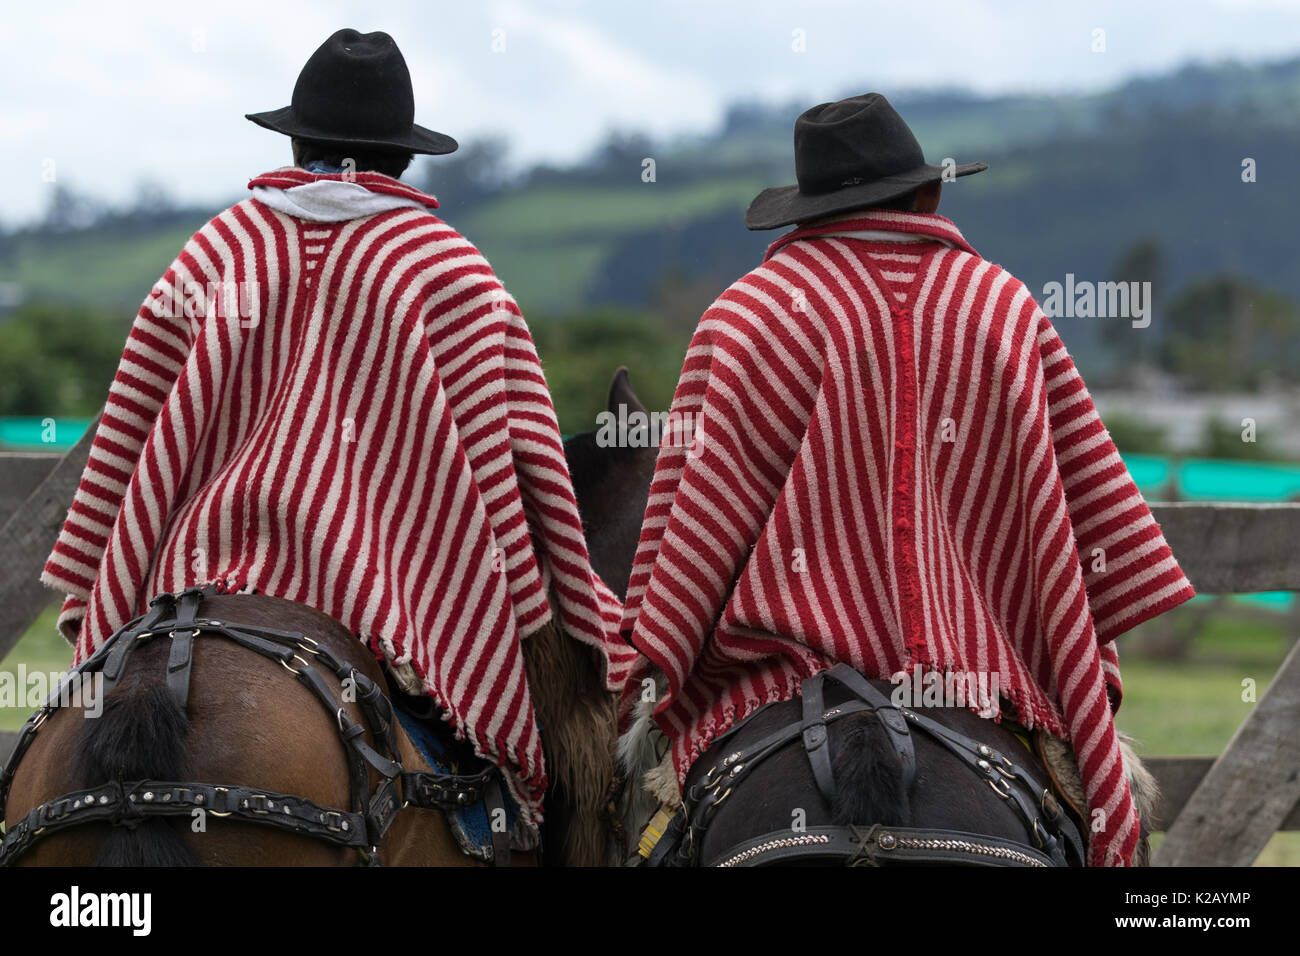 June 3, 2017 Machachi, Ecuador: cowboys from the Andes called 'chagra' on hoseback wearing striped ponchos - Stock Image